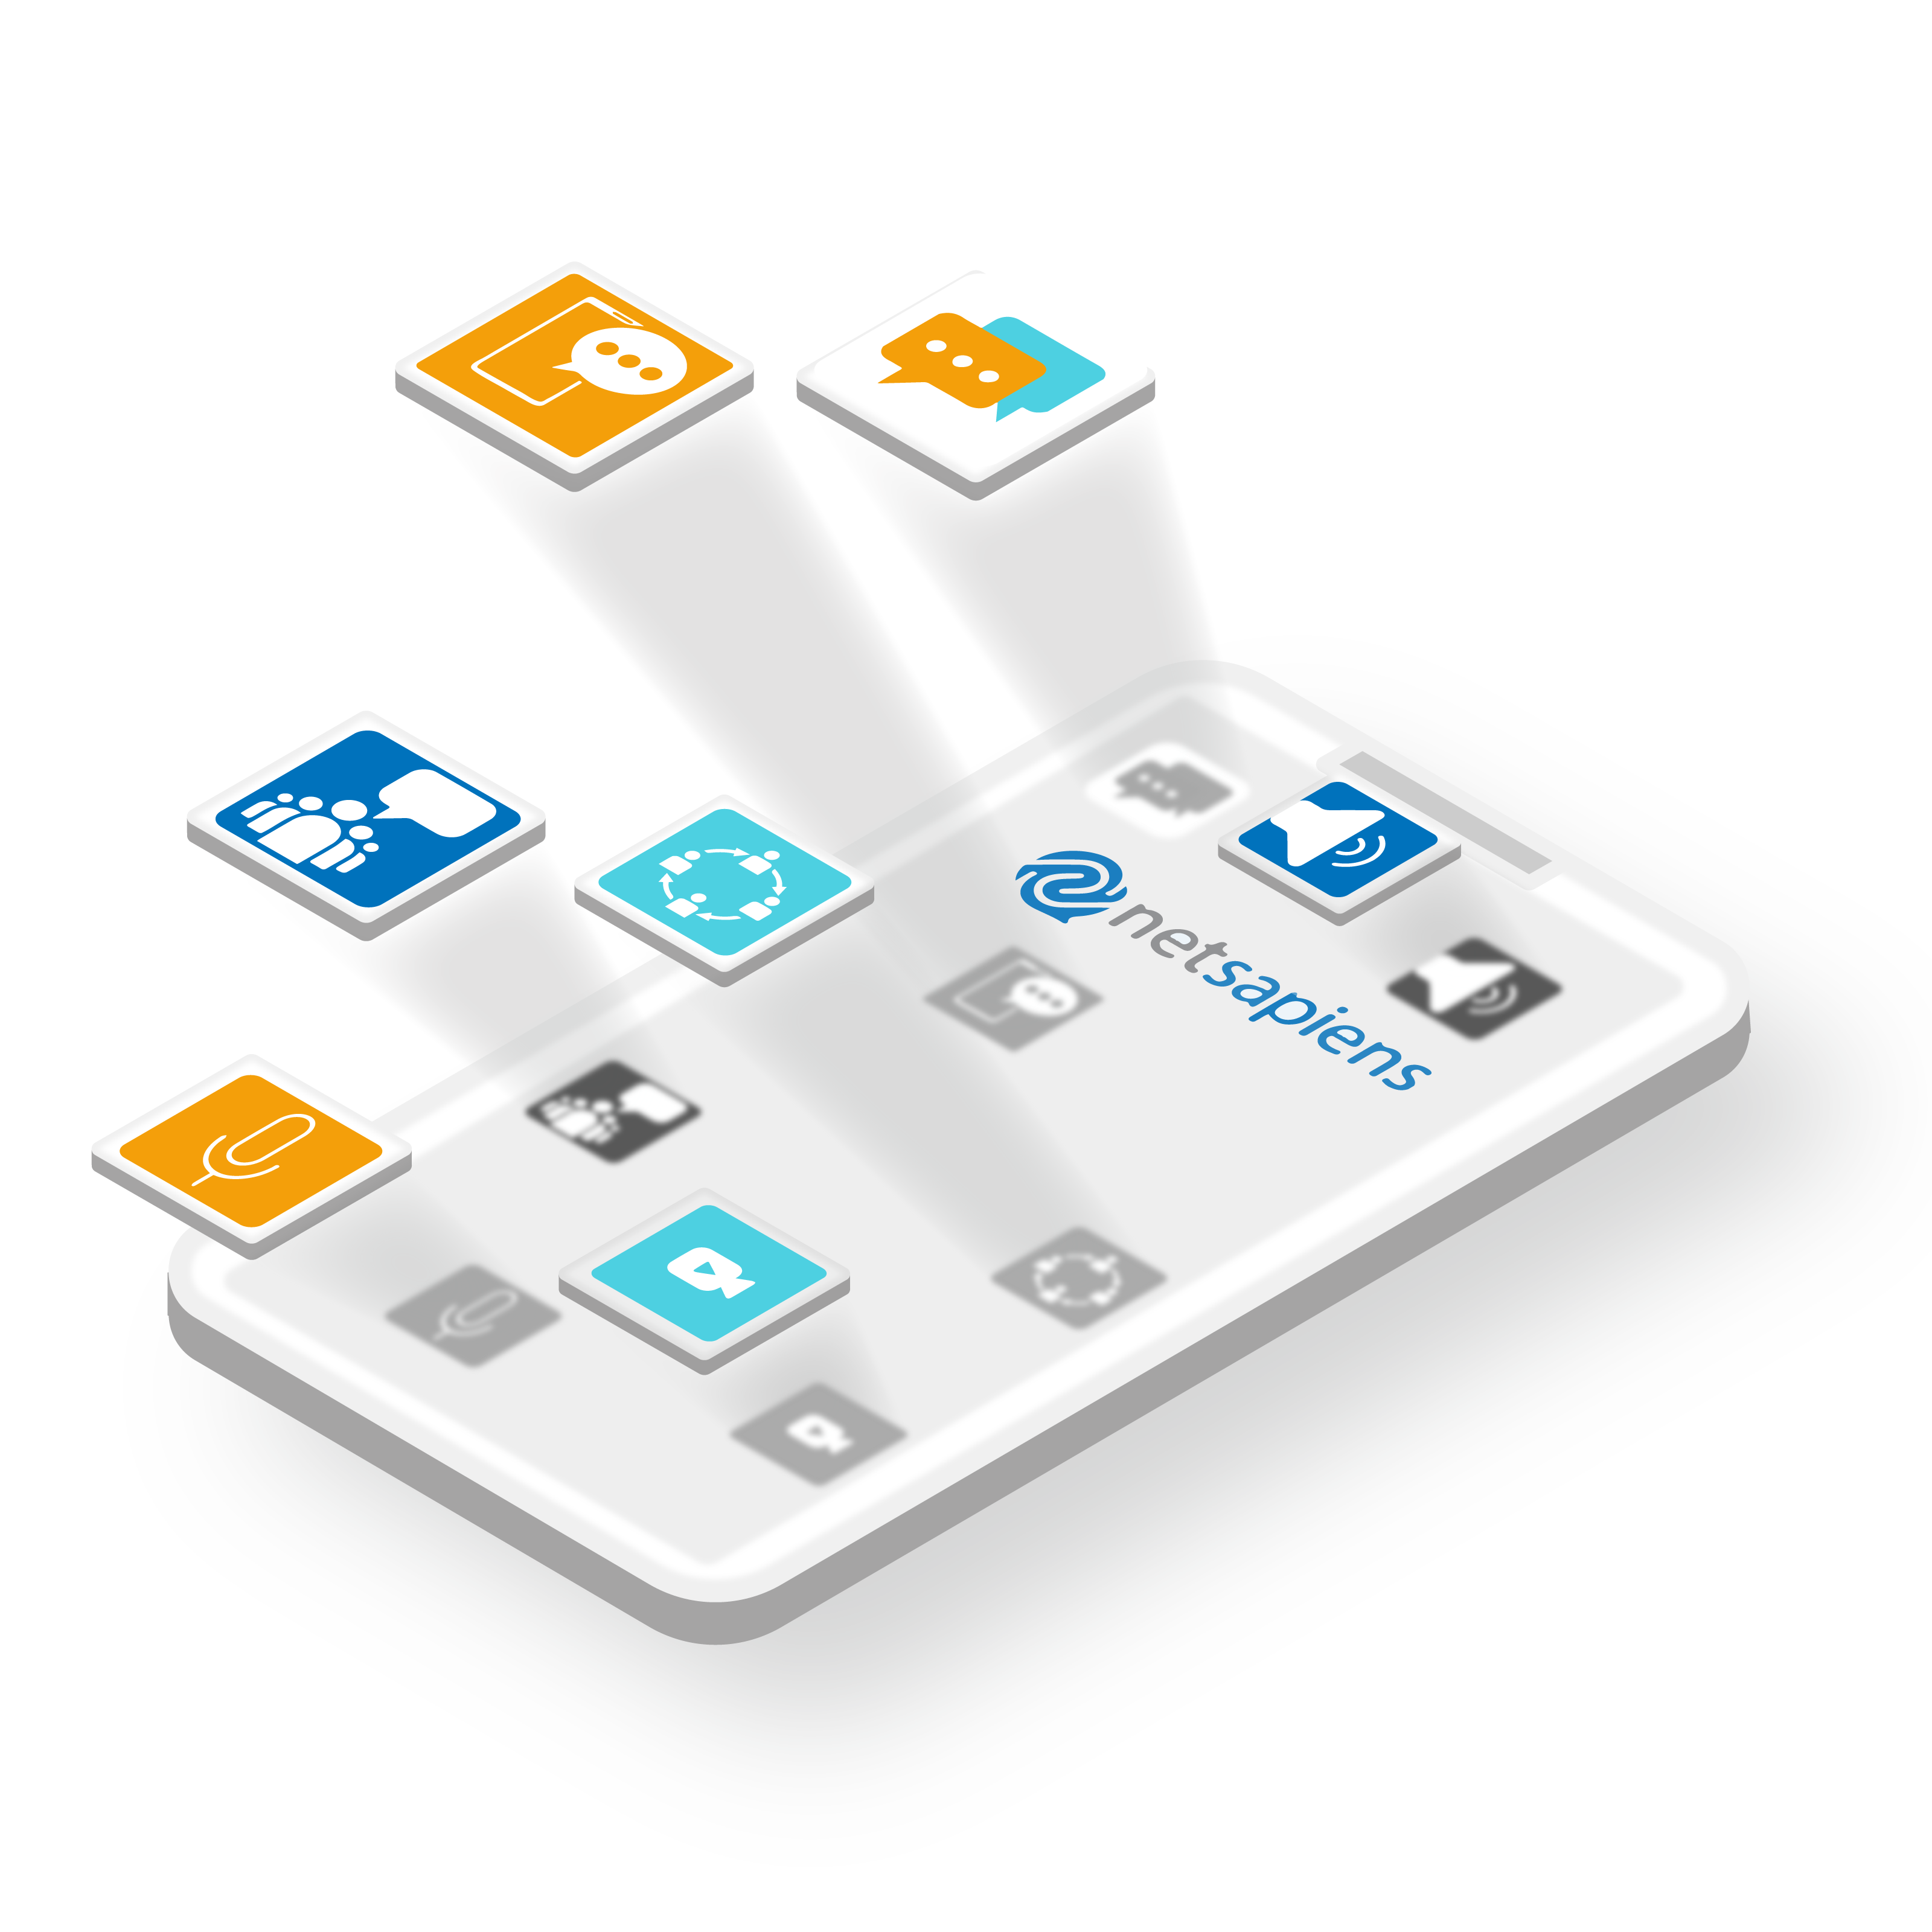 unified communications solution